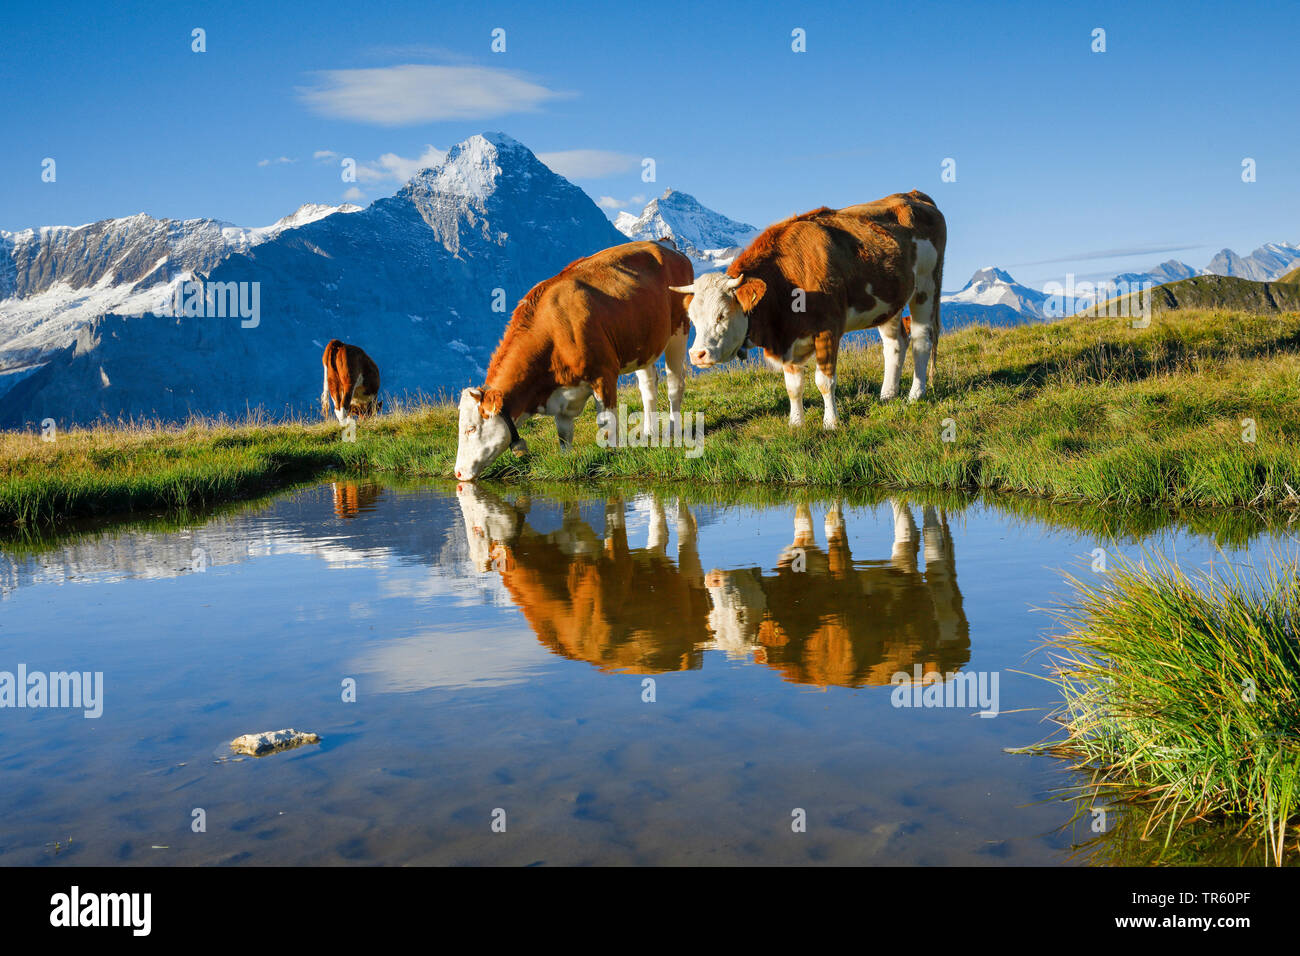 domestic cattle (Bos primigenius f. taurus), Fleckvieh standing on an alpine pasture and drinking out of an alpine lake, Eiger, Moench and Jungfrau in the background, Switzerland, Bernese Oberland Stock Photo